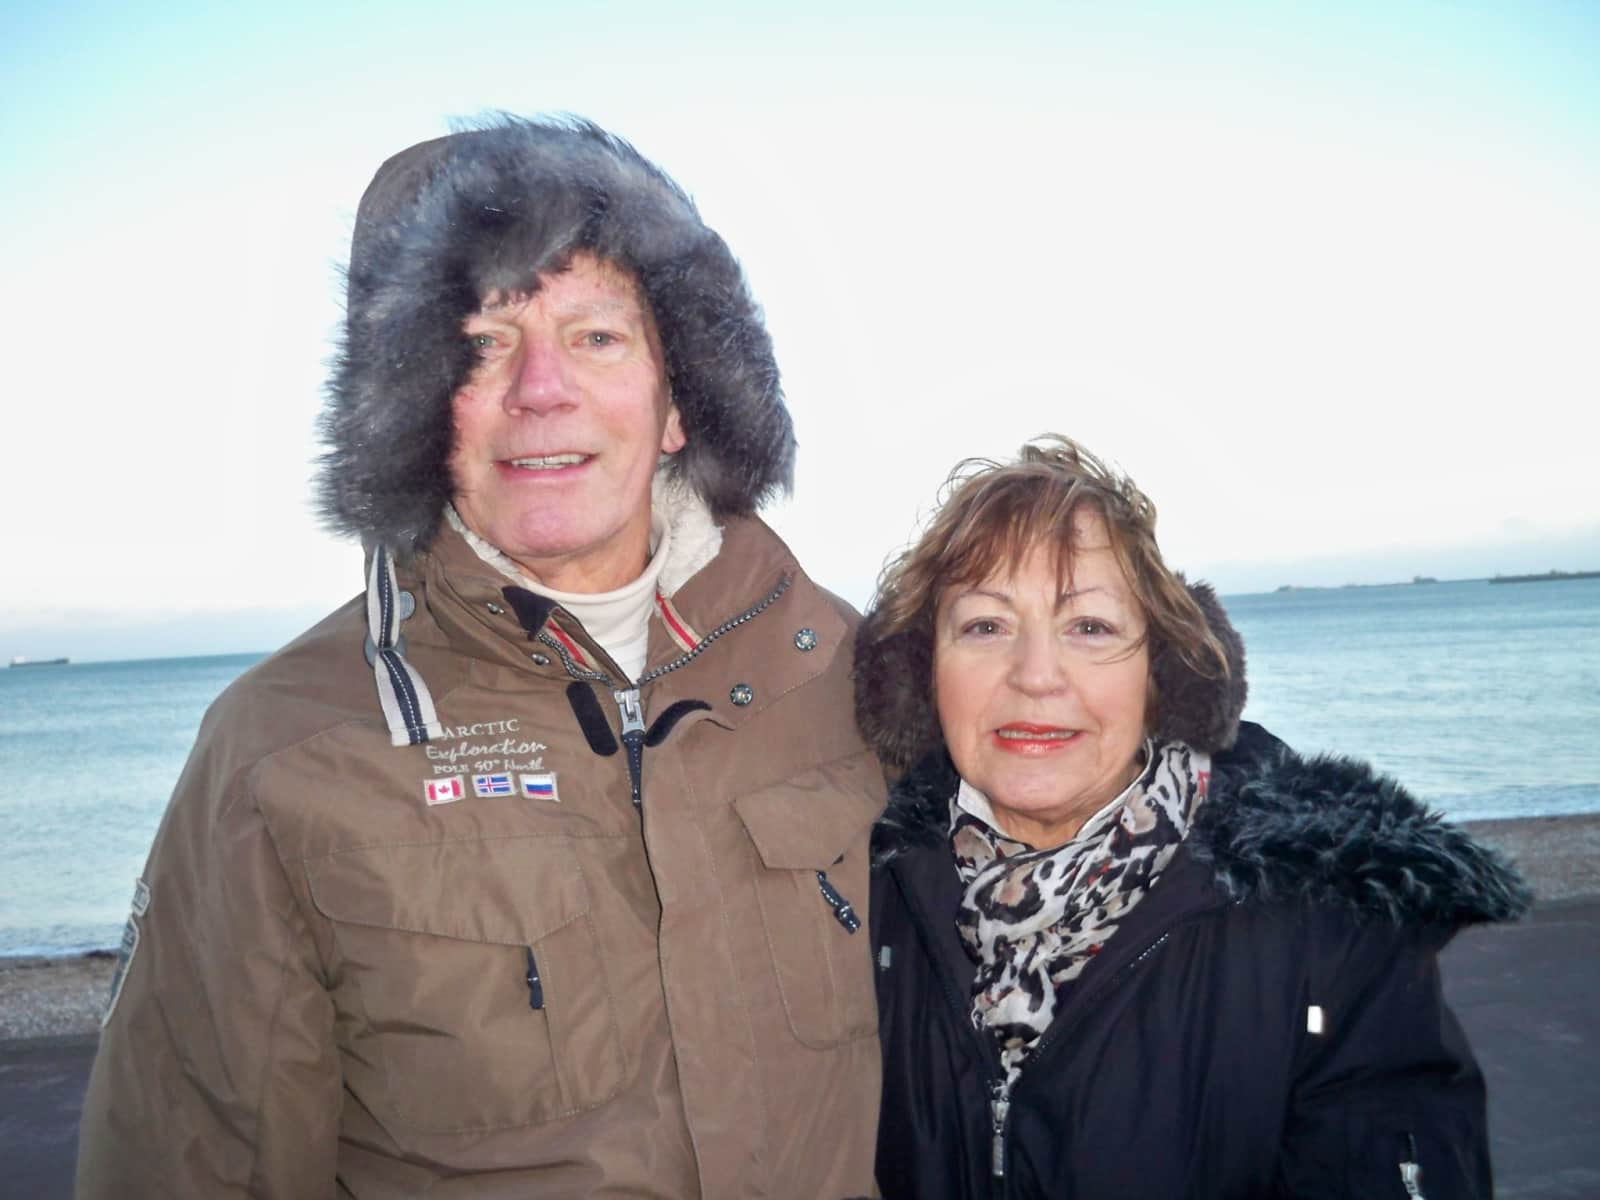 Celia & Jon from Dorchester, United Kingdom